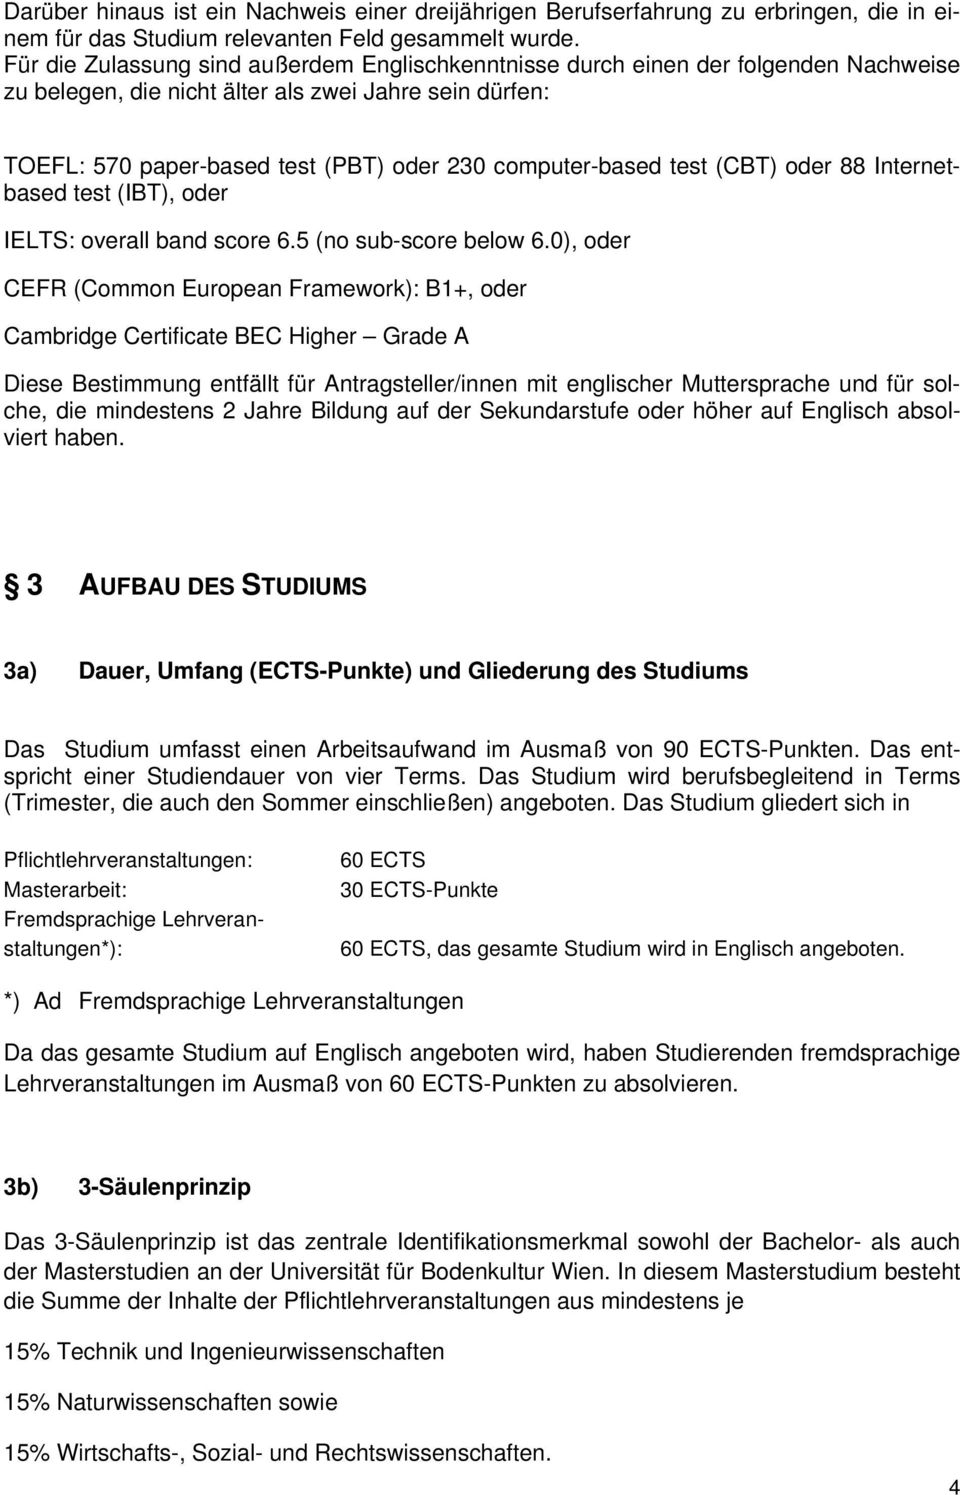 computer-based test (CBT) oder 88 Internetbased test (IBT), oder IELTS: overall band score 6.5 (no sub-score below 6.